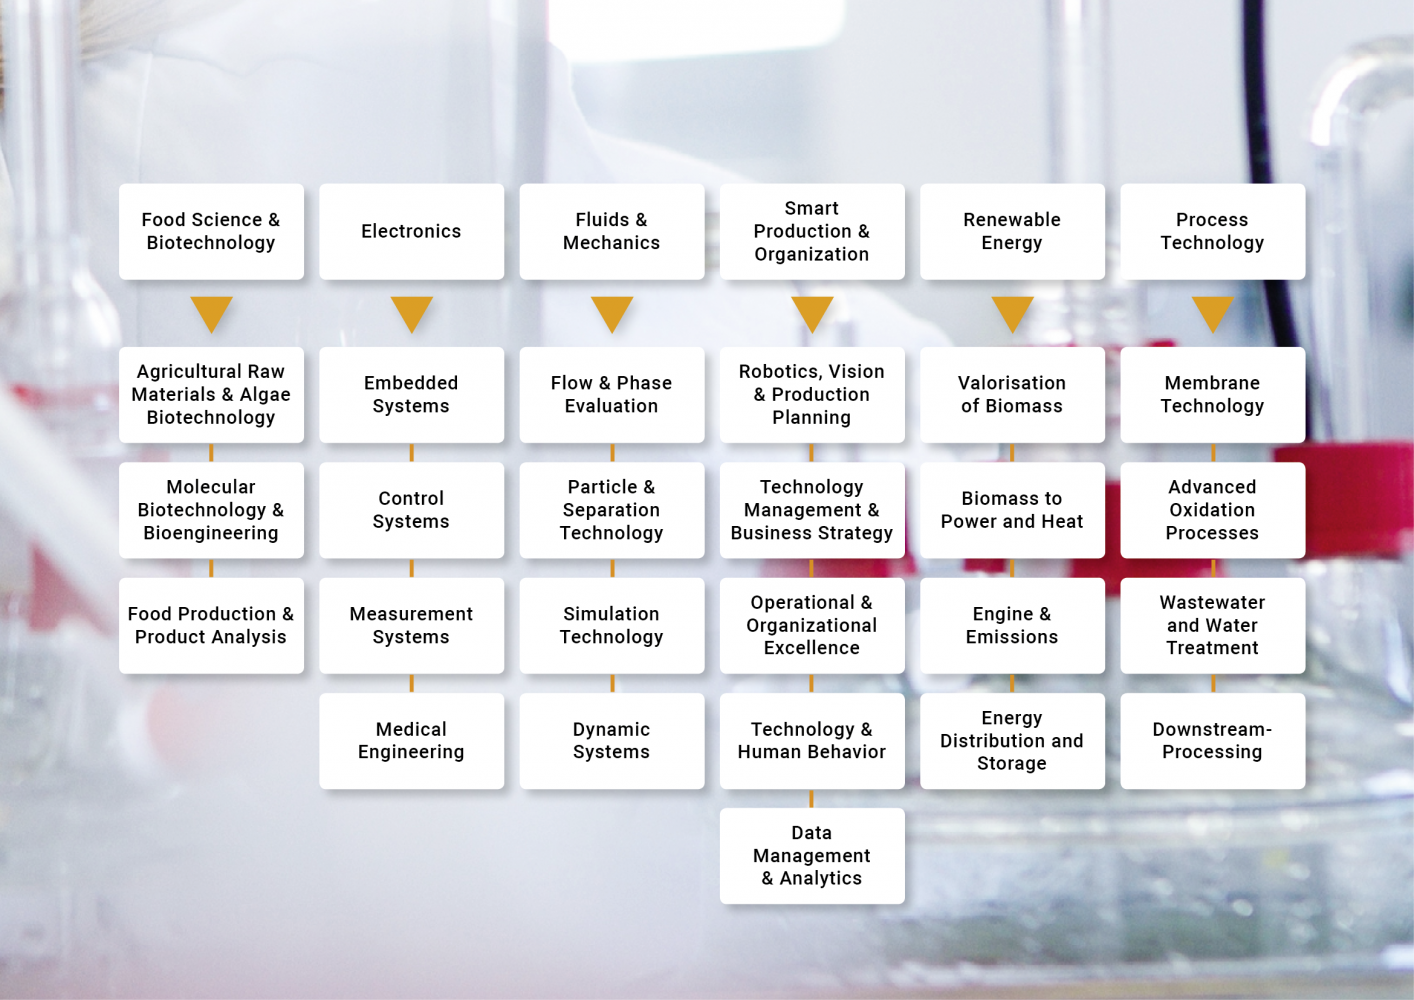 Research areas displayed in a table.